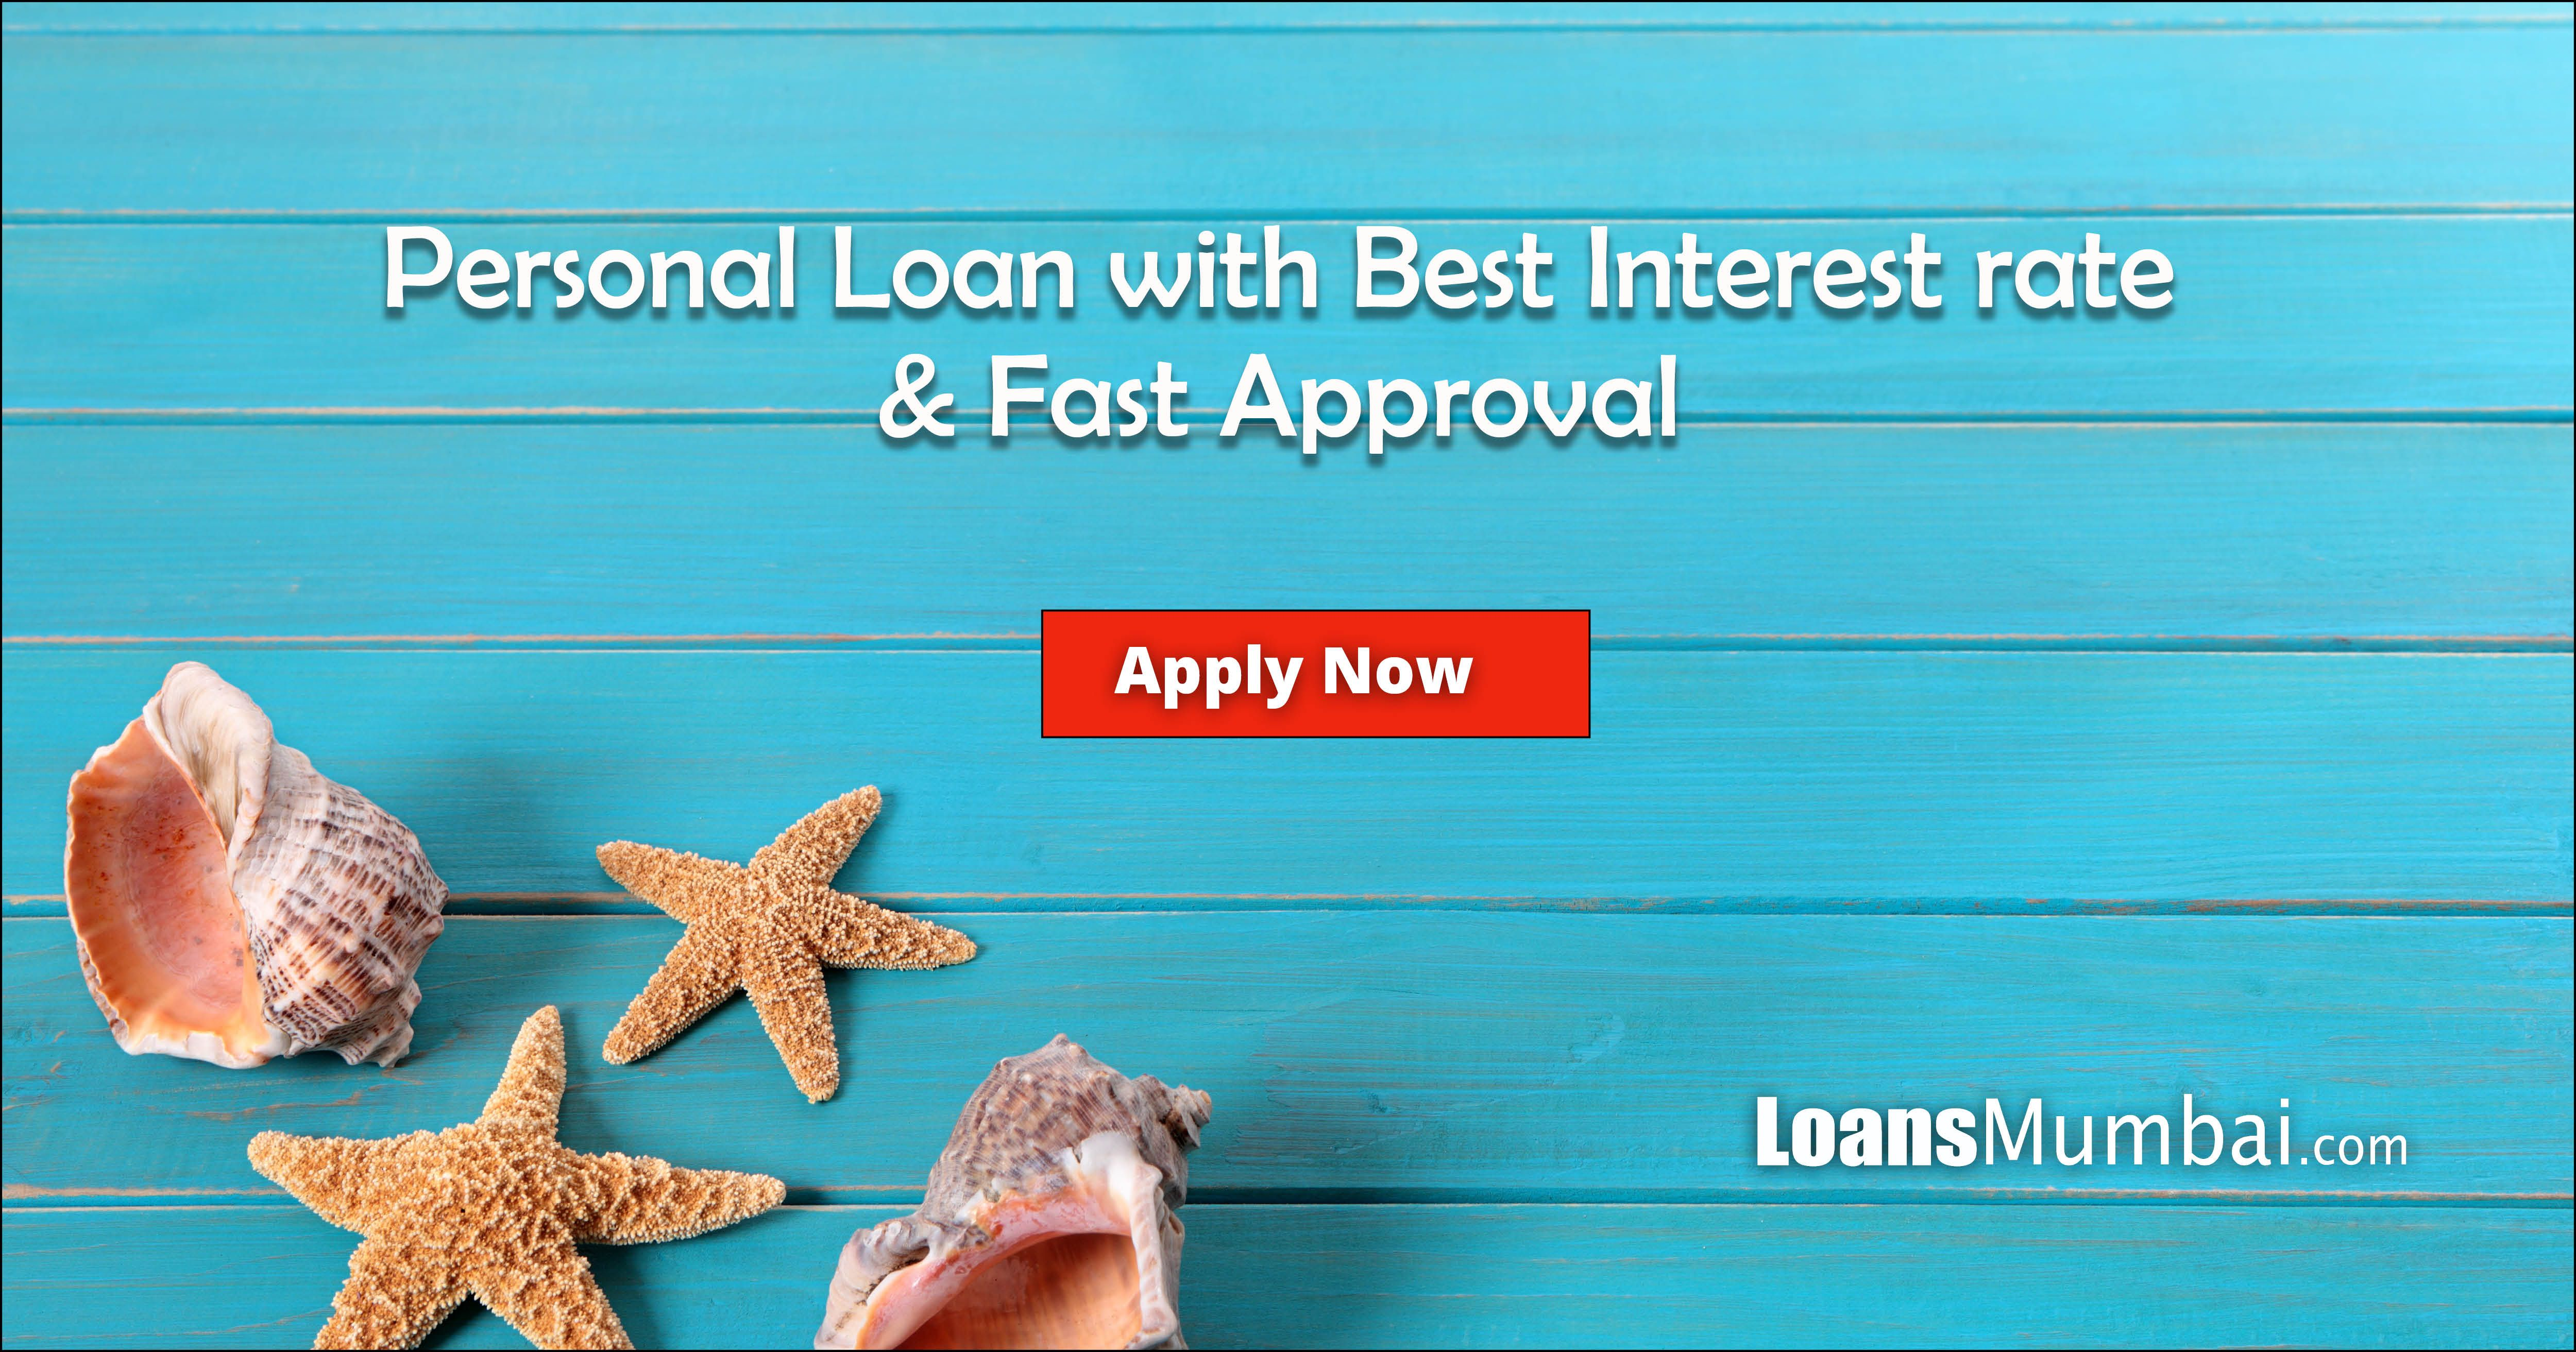 La posta tribal payday loan image 5